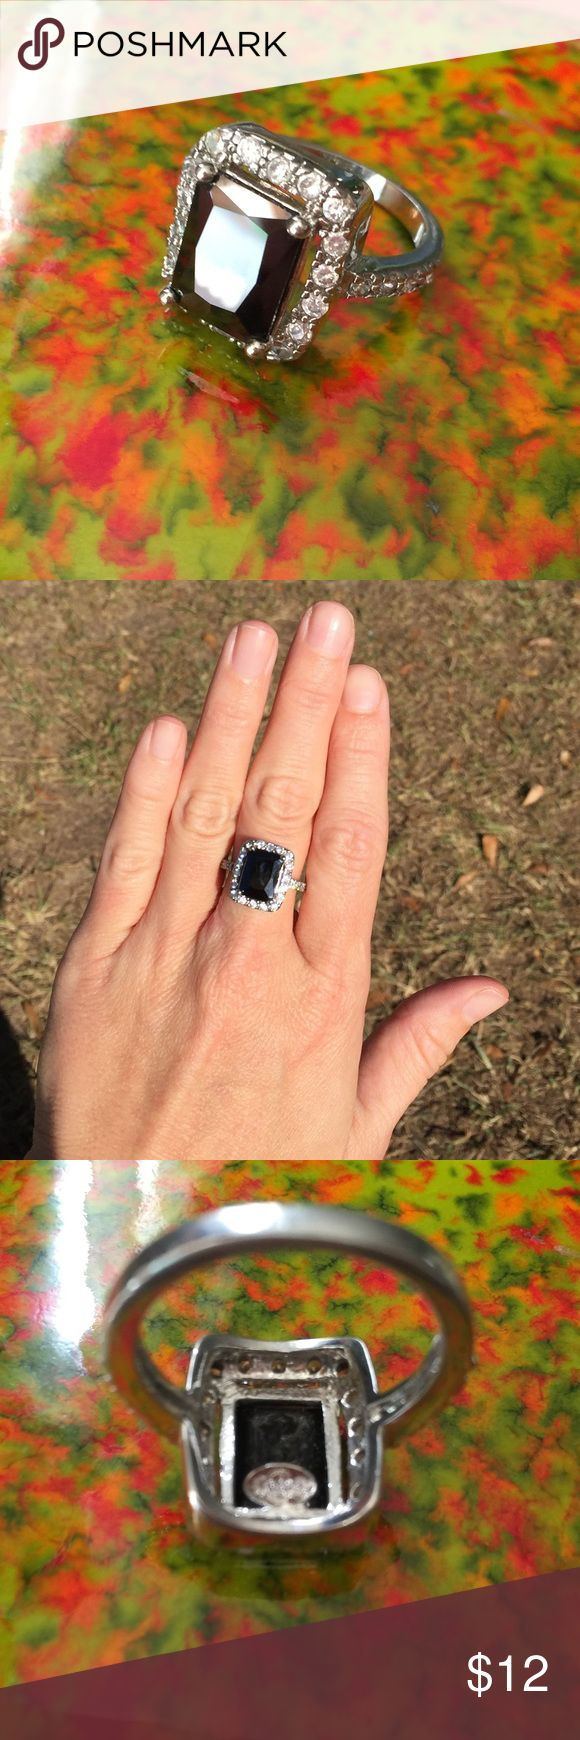 Premier Jewelry Black Onyx Ring Size 8 Beautiful square black onyx ring surrounded by faux diamonds. Came from Premier Jewelry Catalog. There are no flaws on the ring. Premier Designs Jewelry Rings